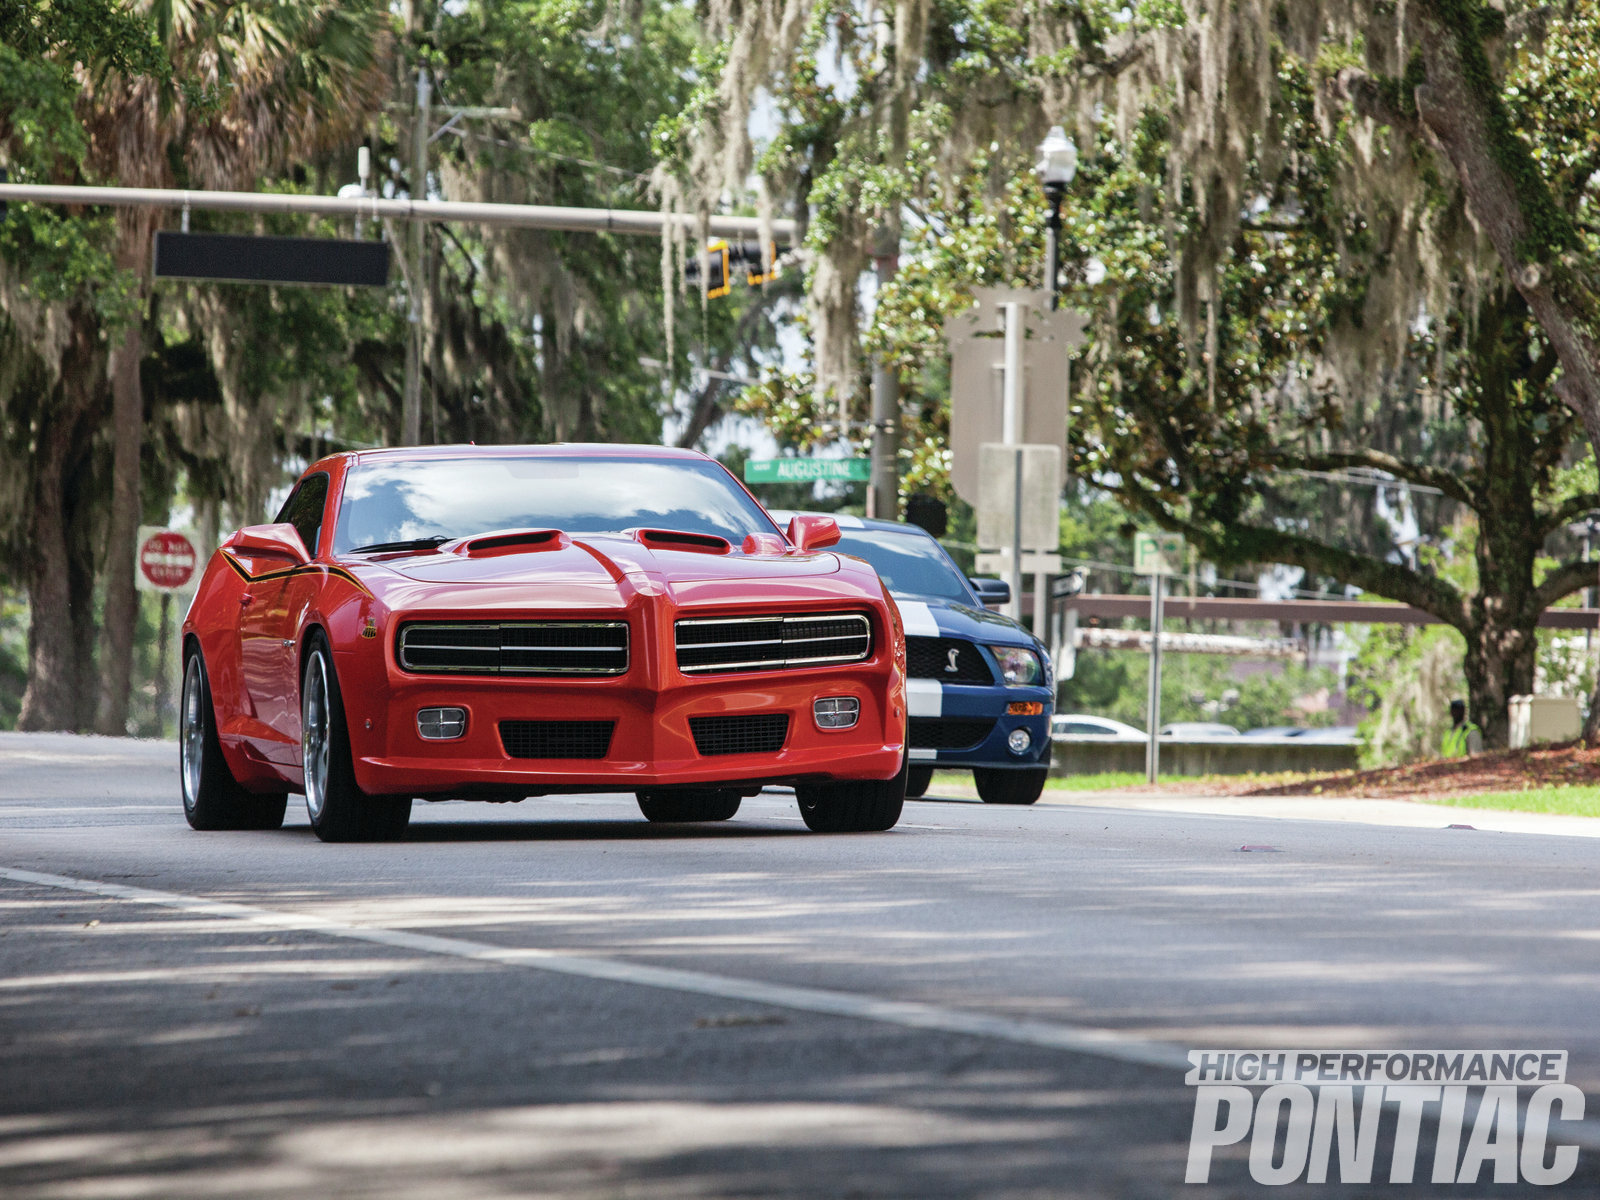 Yeah, we raced them in front of the Florida Supreme Court … and we got it all on film! Check out the videos on our Facebook page, and our YouTube channel to see much more on the Trans Am Depot 6T9 Goat and watch the Trans Am Depot crew beat up on a Shelby Mustang.